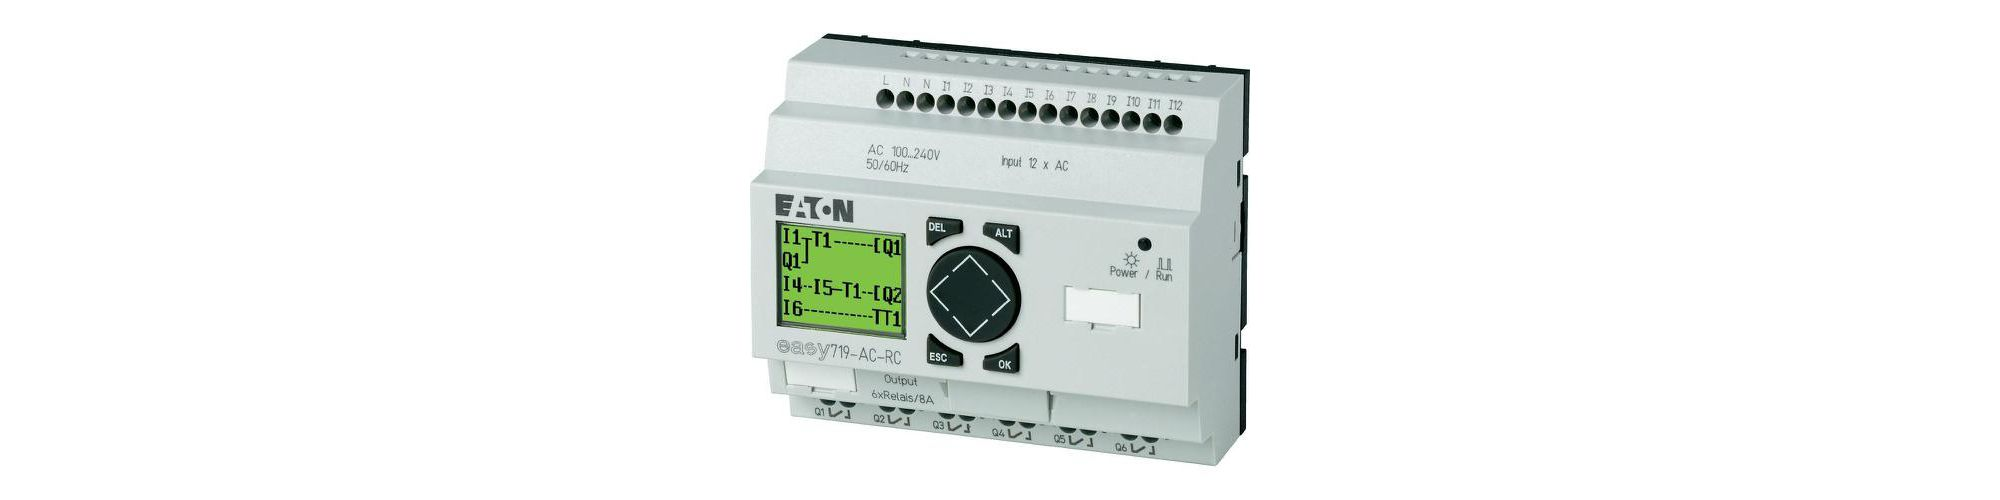 Programmable relays; out1 electrparam:8a; inputs:12; outputs:6; easy819-ac-rc